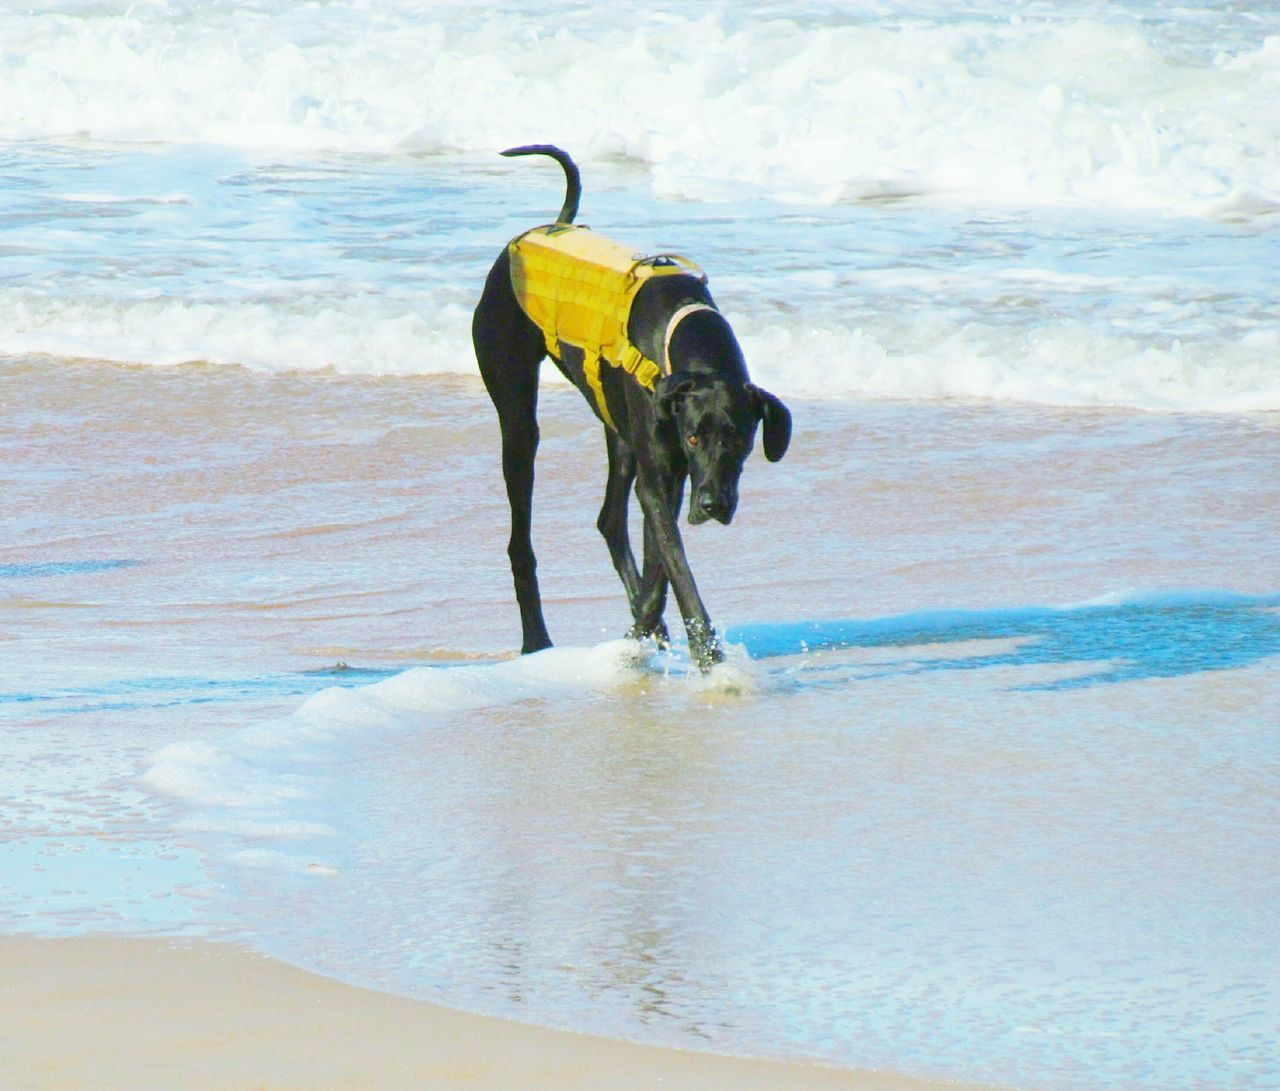 Sea Pets Beach One Animal Water Dog Domestic Animals Outdoors Mammal Nature No People Day Animal Themes Sky Dog On Beach Dog On The Beach Sand